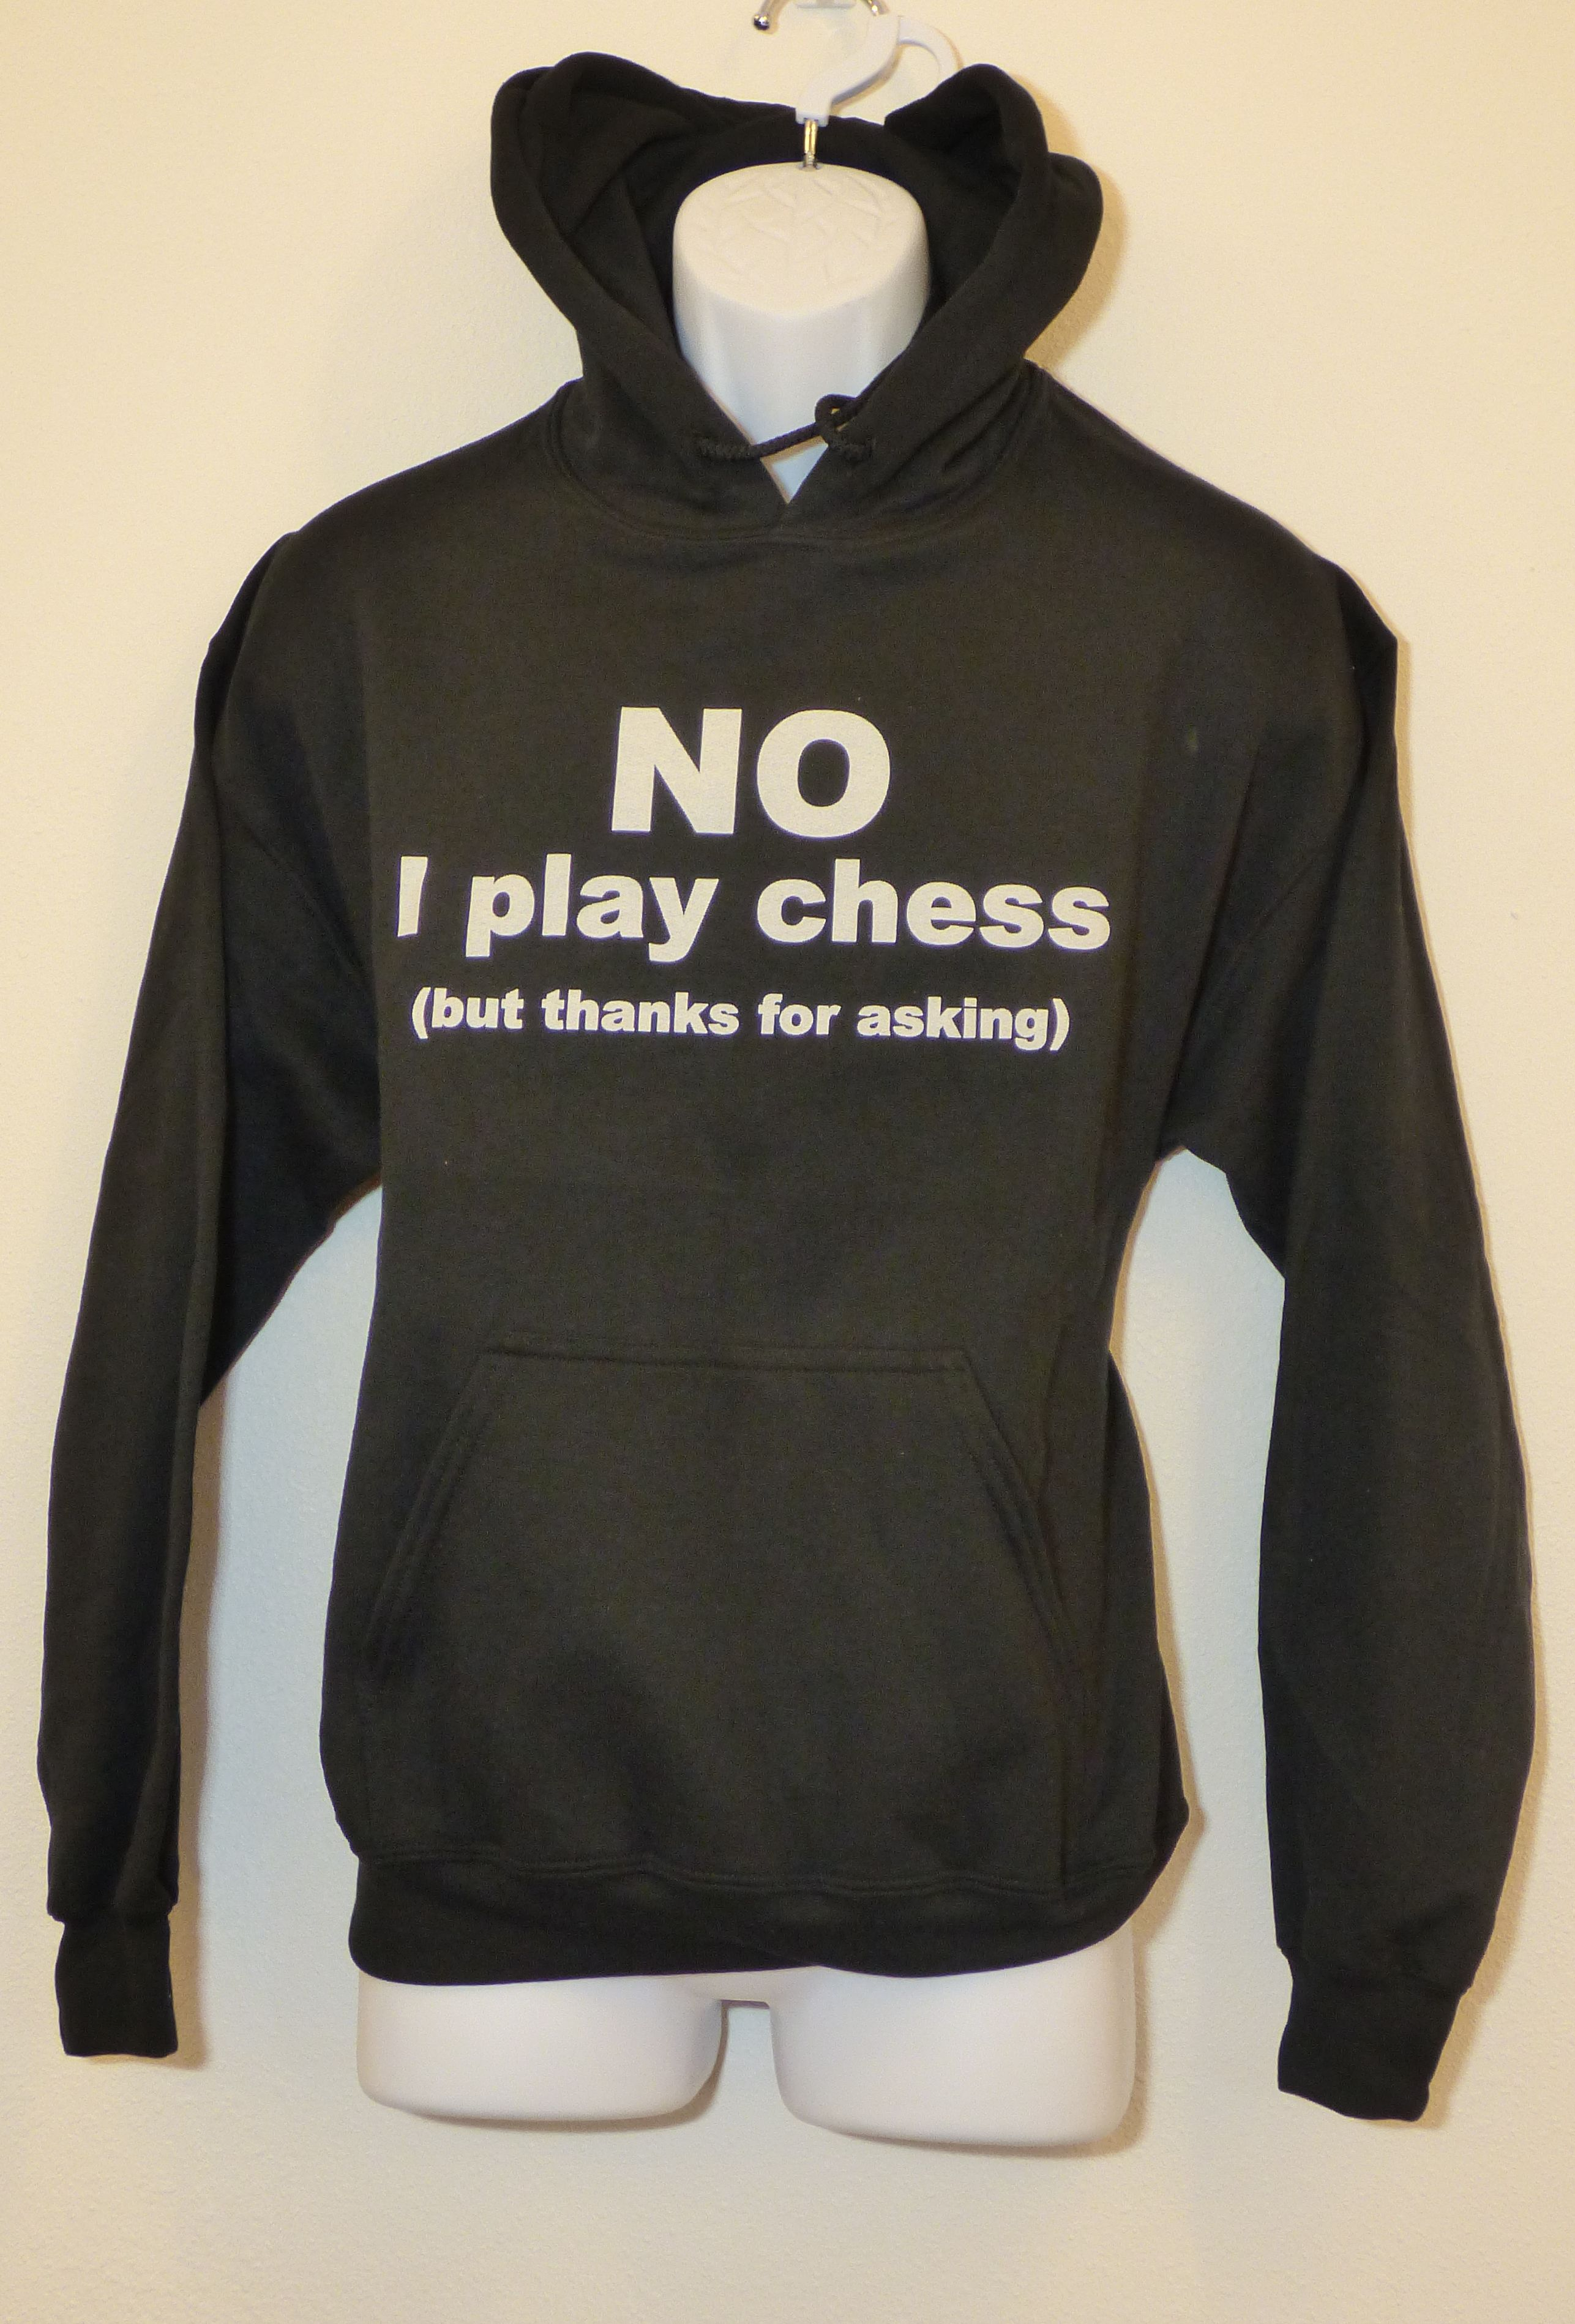 'NO I play chess but thanks for asking' hoodie